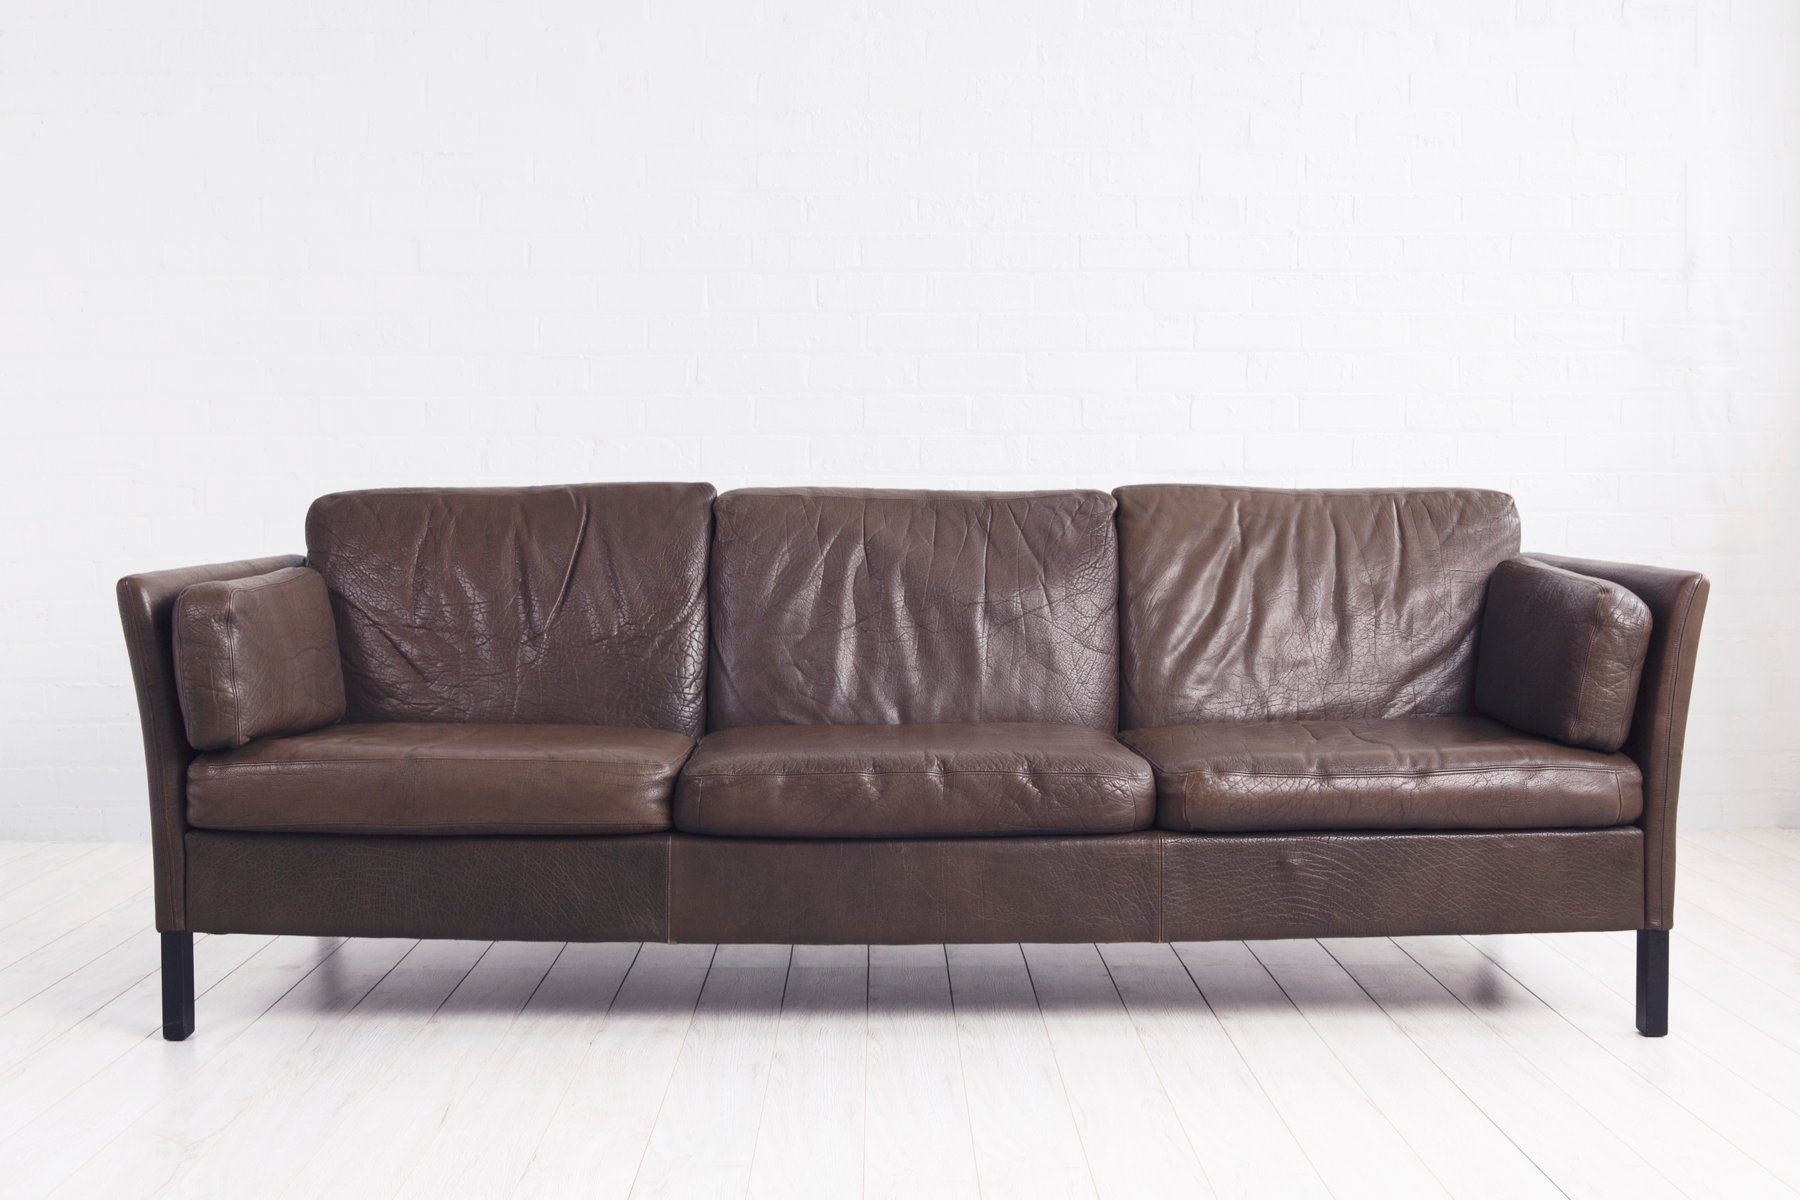 Leather 3 seater sofa bed mjob blog for Sofa bed 3 seater